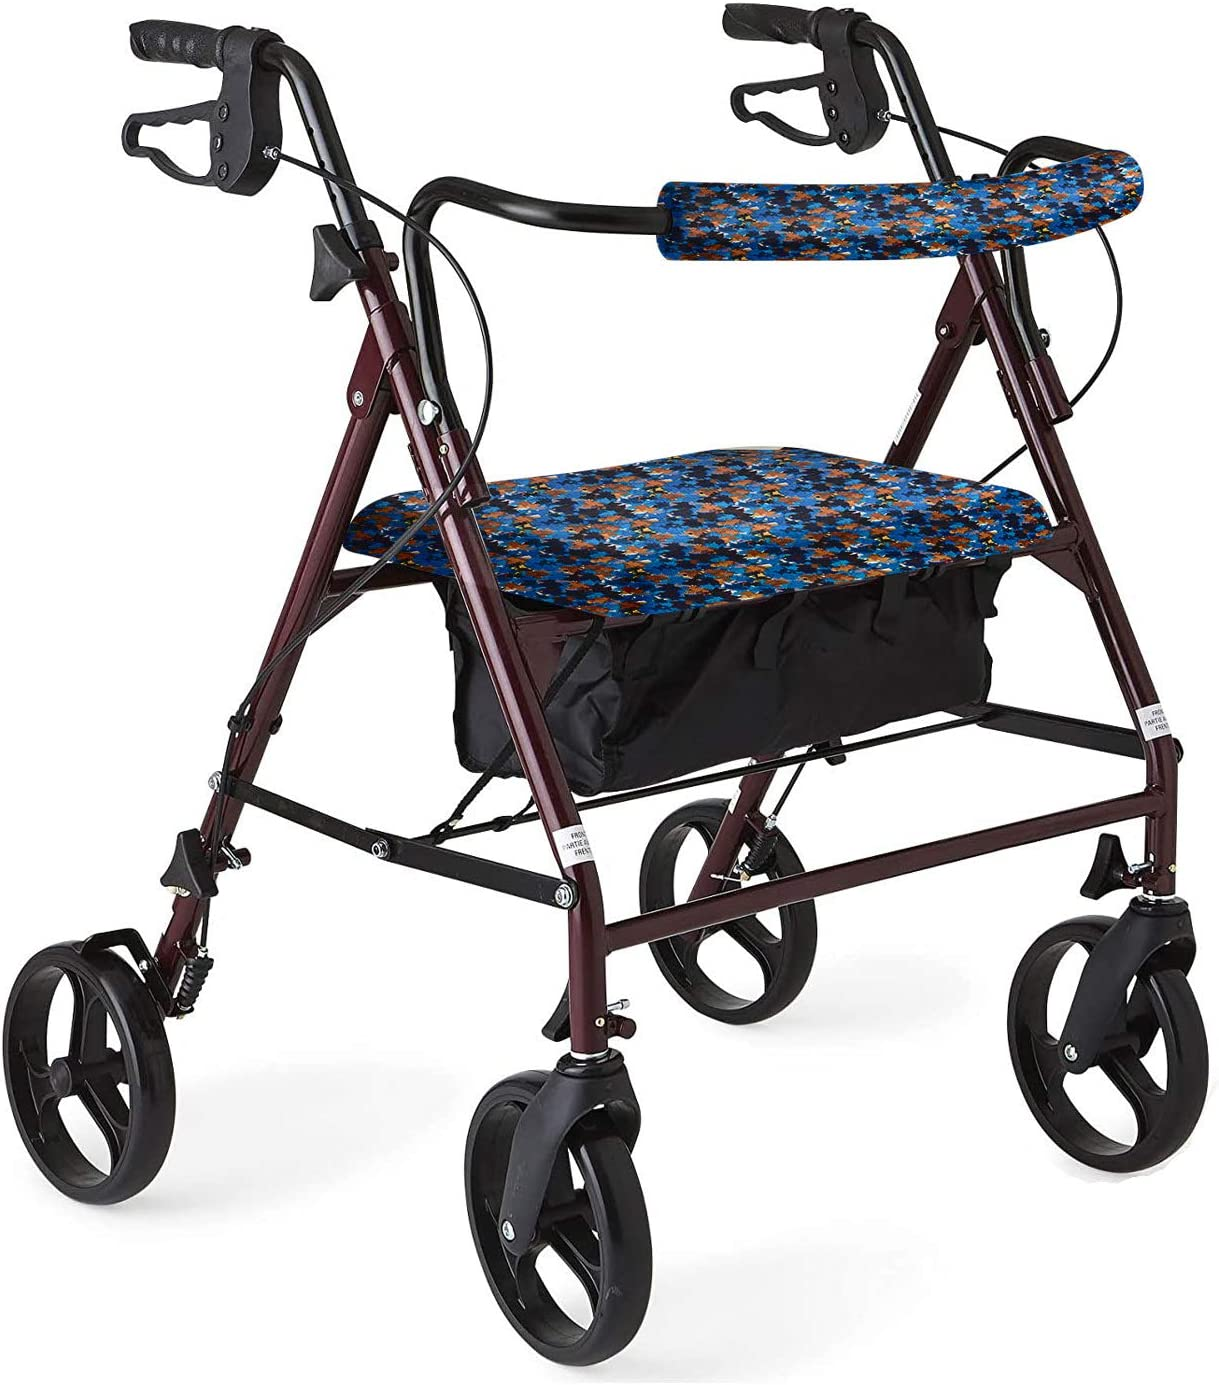 Unisex Max 62% OFF Rollator Walker Seat and Rollbar Universa Backrest New color Covers